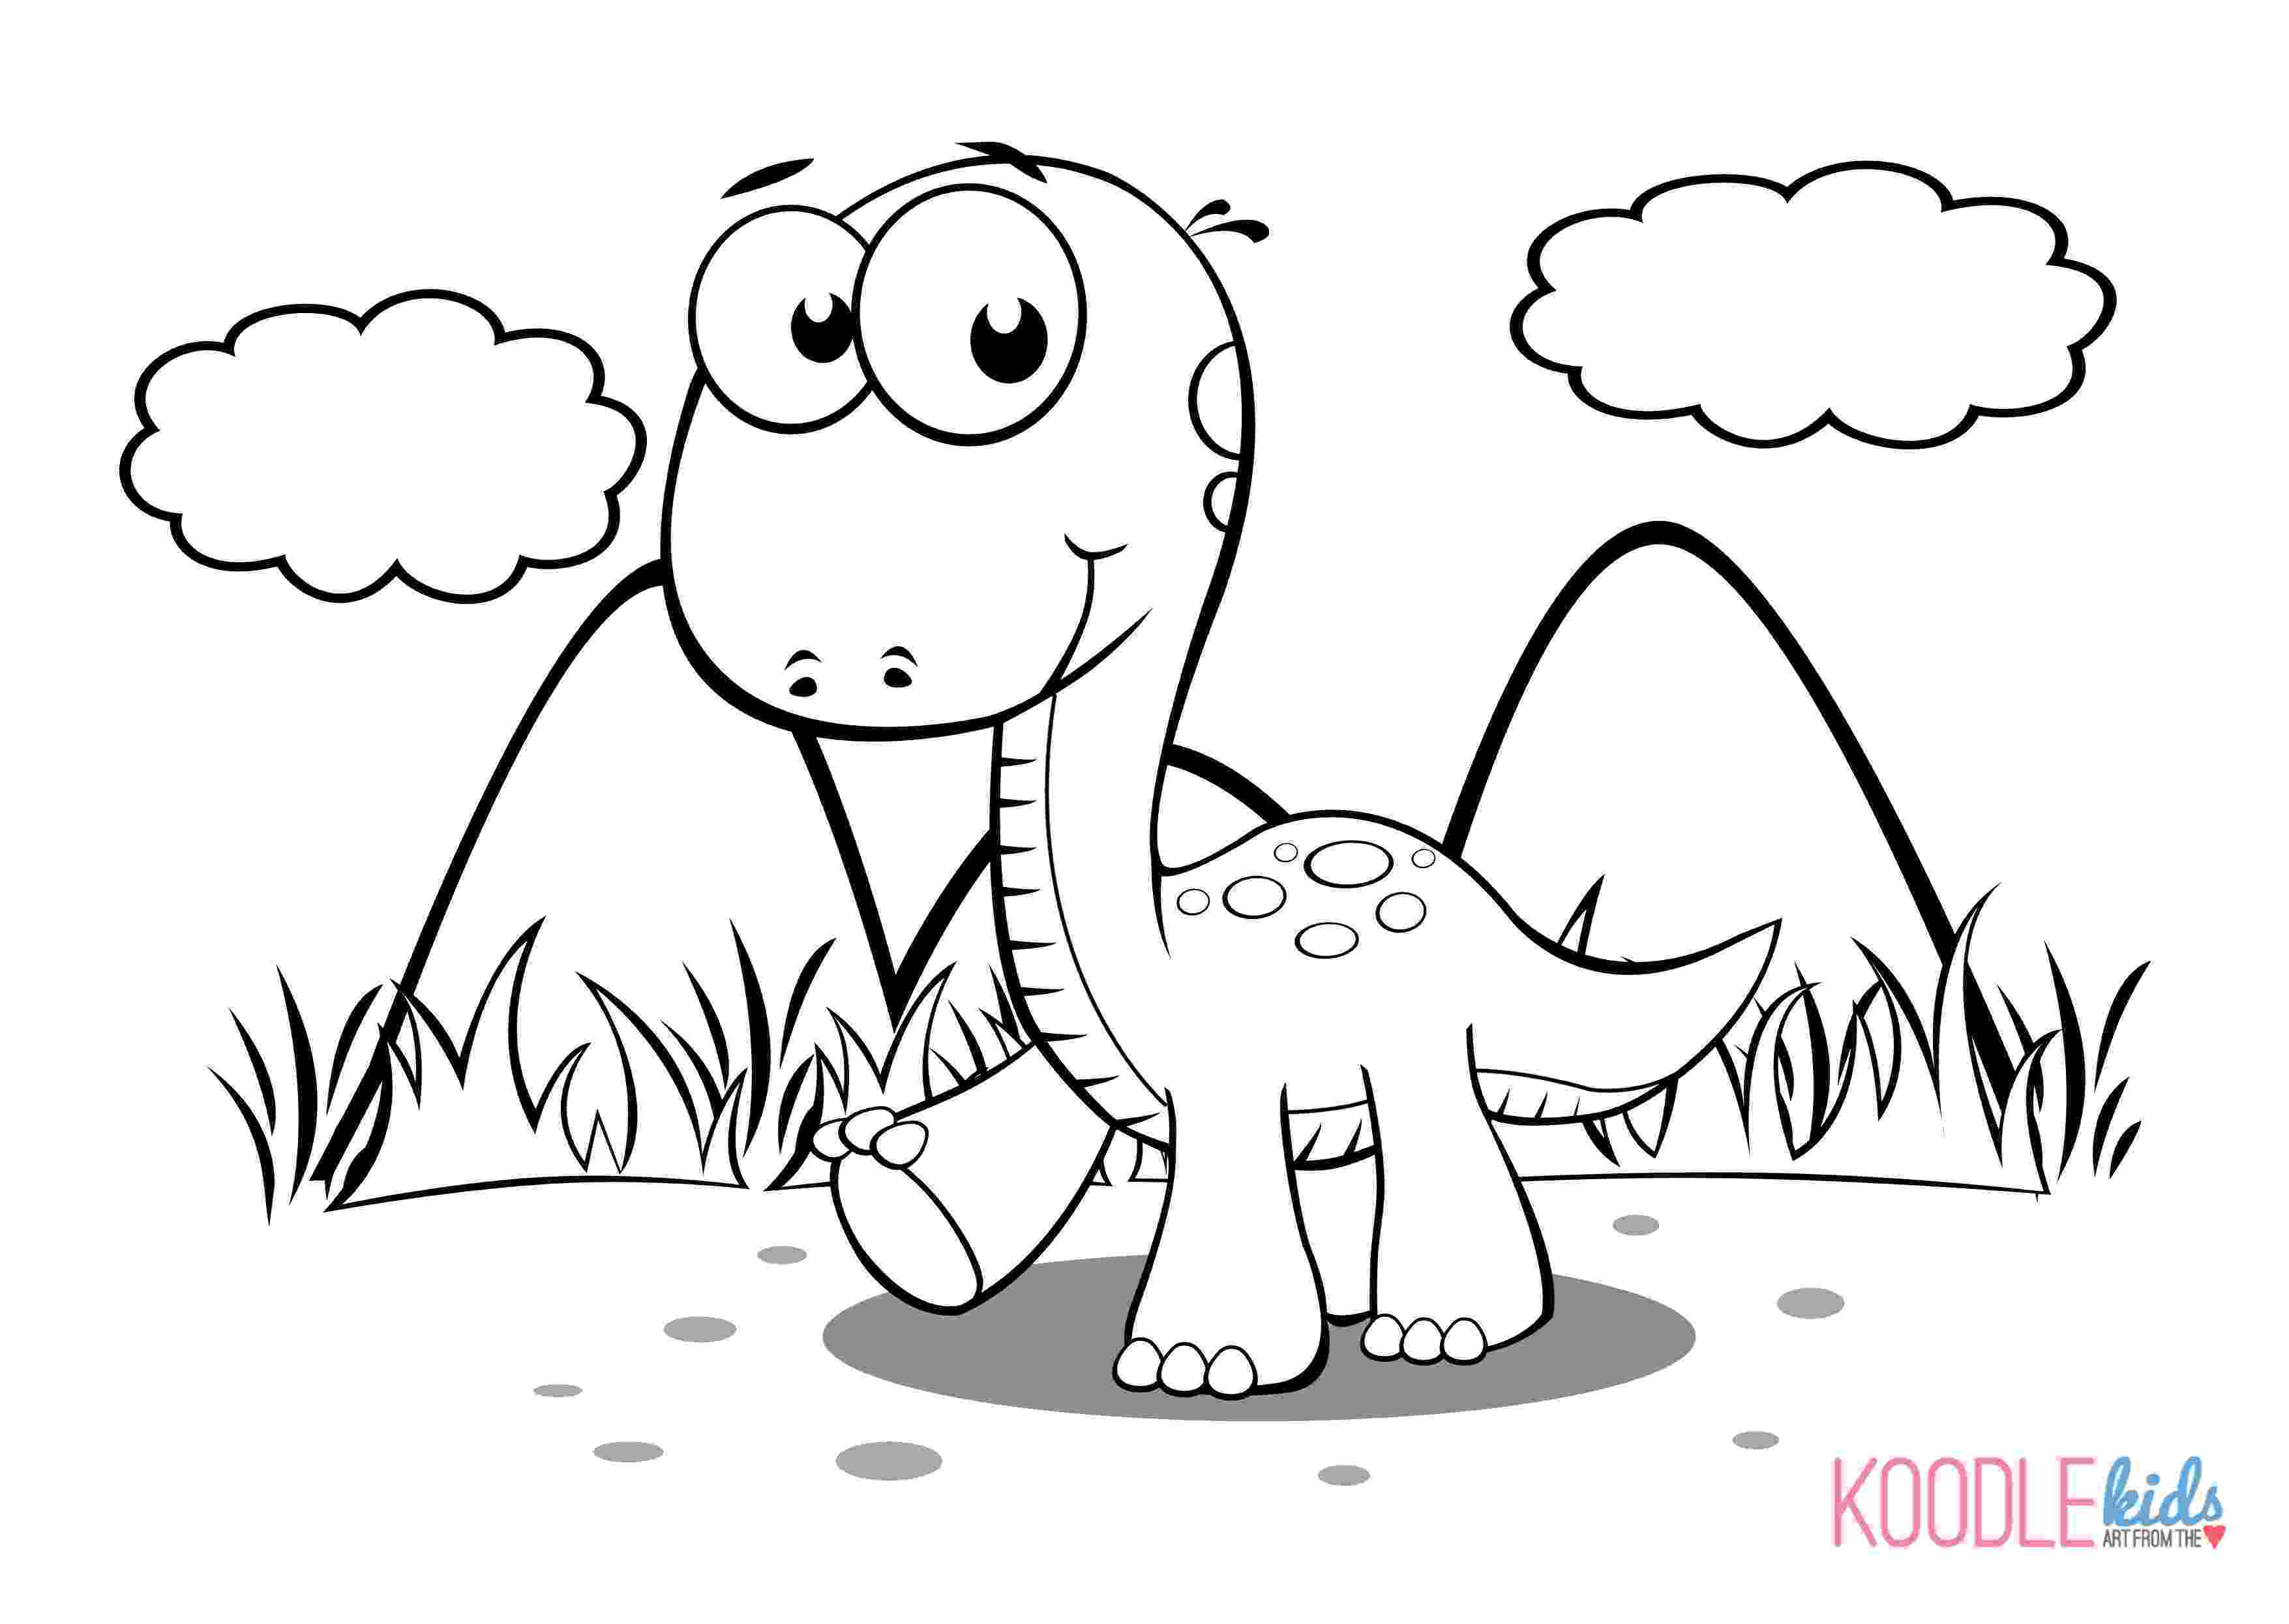 dinosaur coloring pages for toddlers free printable dinosaur coloring pages for kids toddlers dinosaur coloring pages for